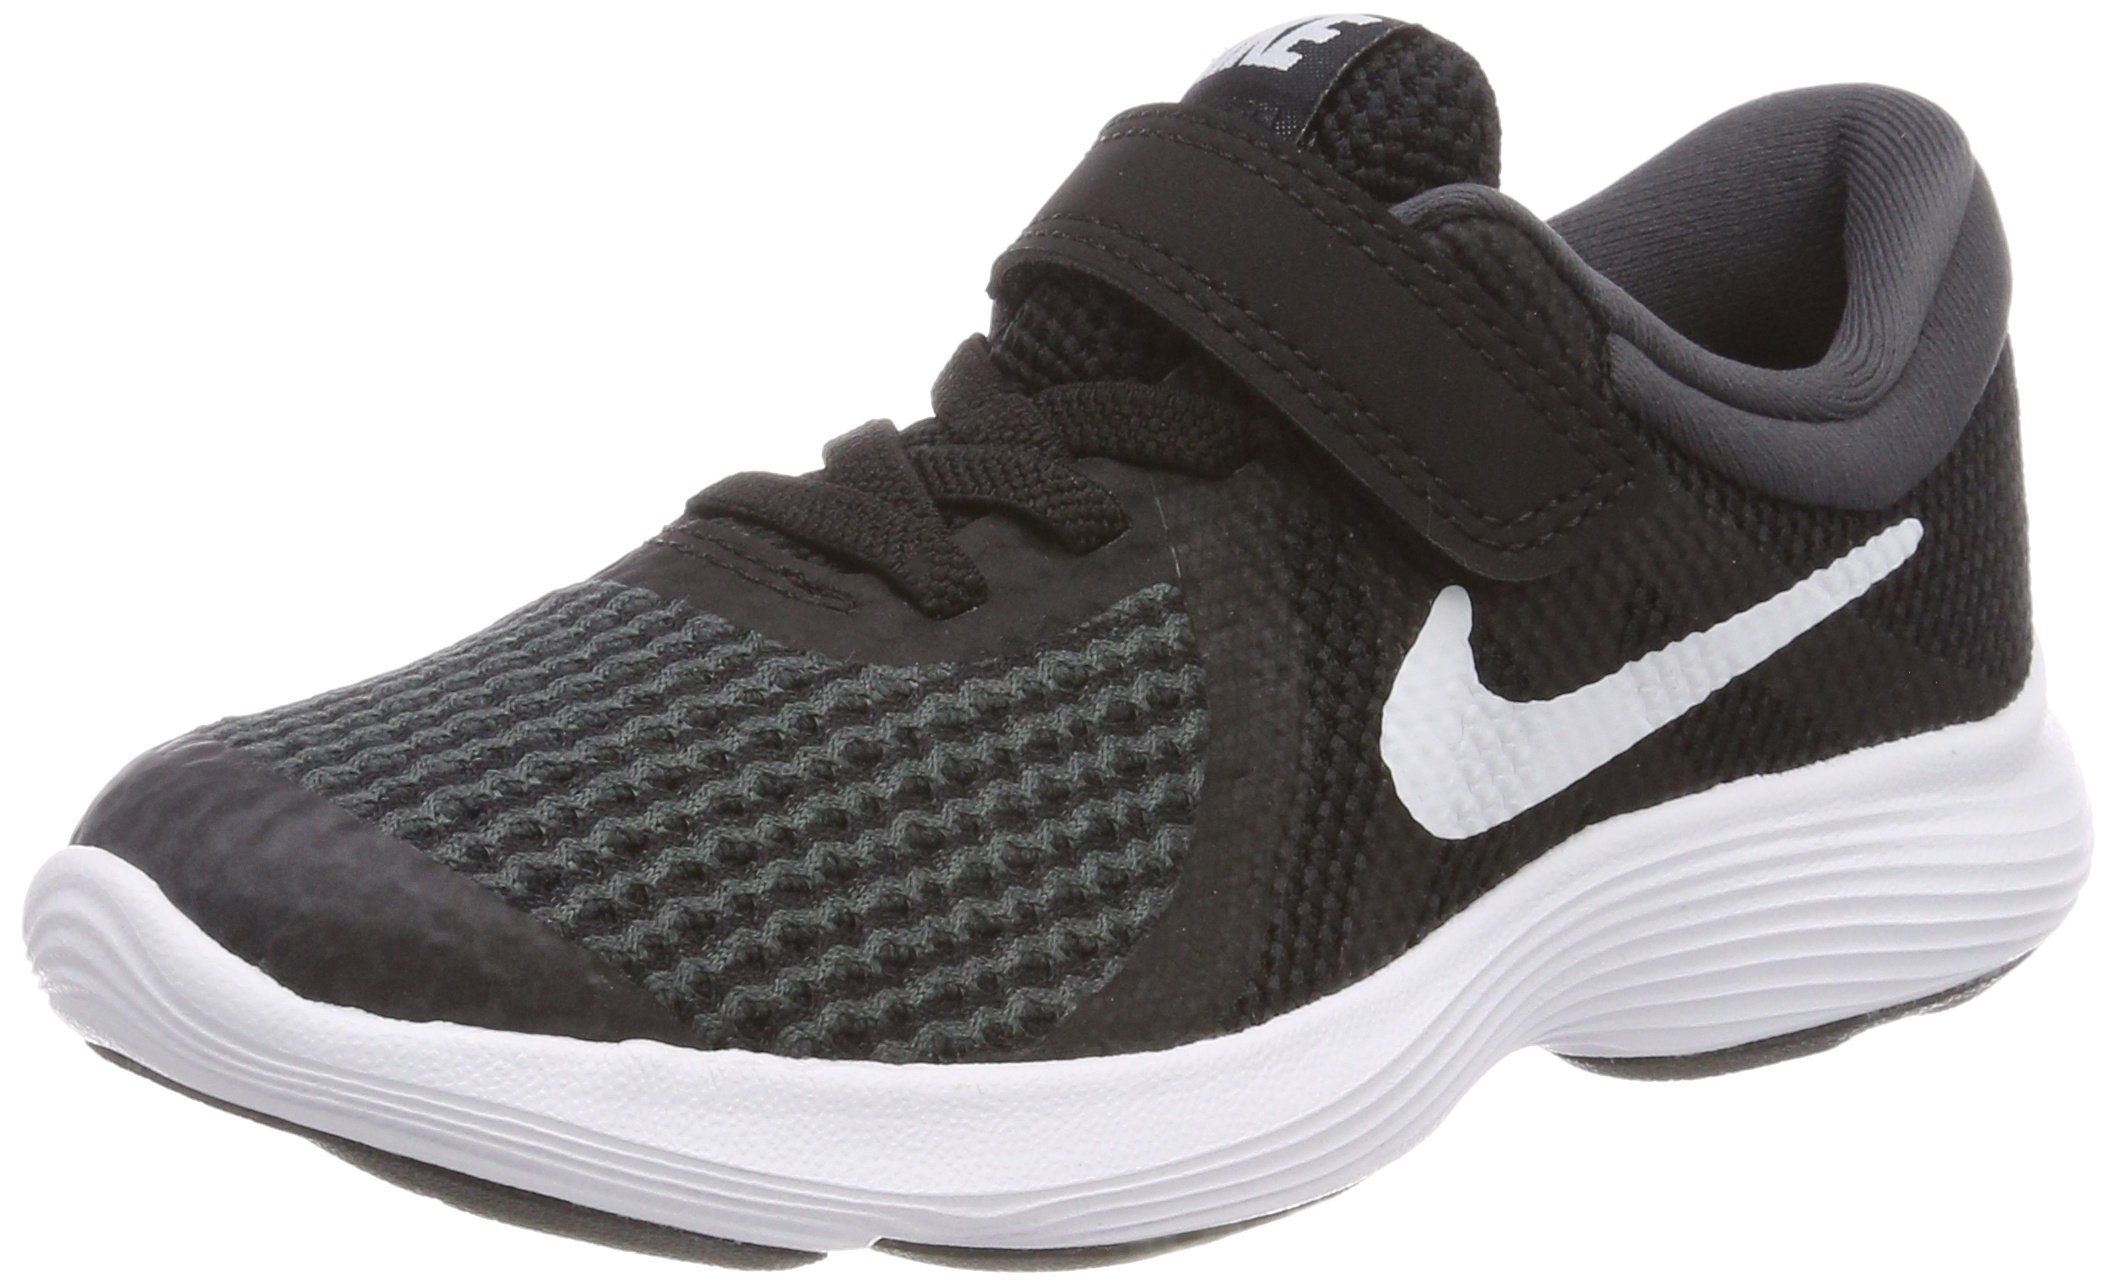 Nike Boys' Revolution 4 (PSV) Running Shoe Black/White-Anthracite 2.5Y Youth US Little Kid